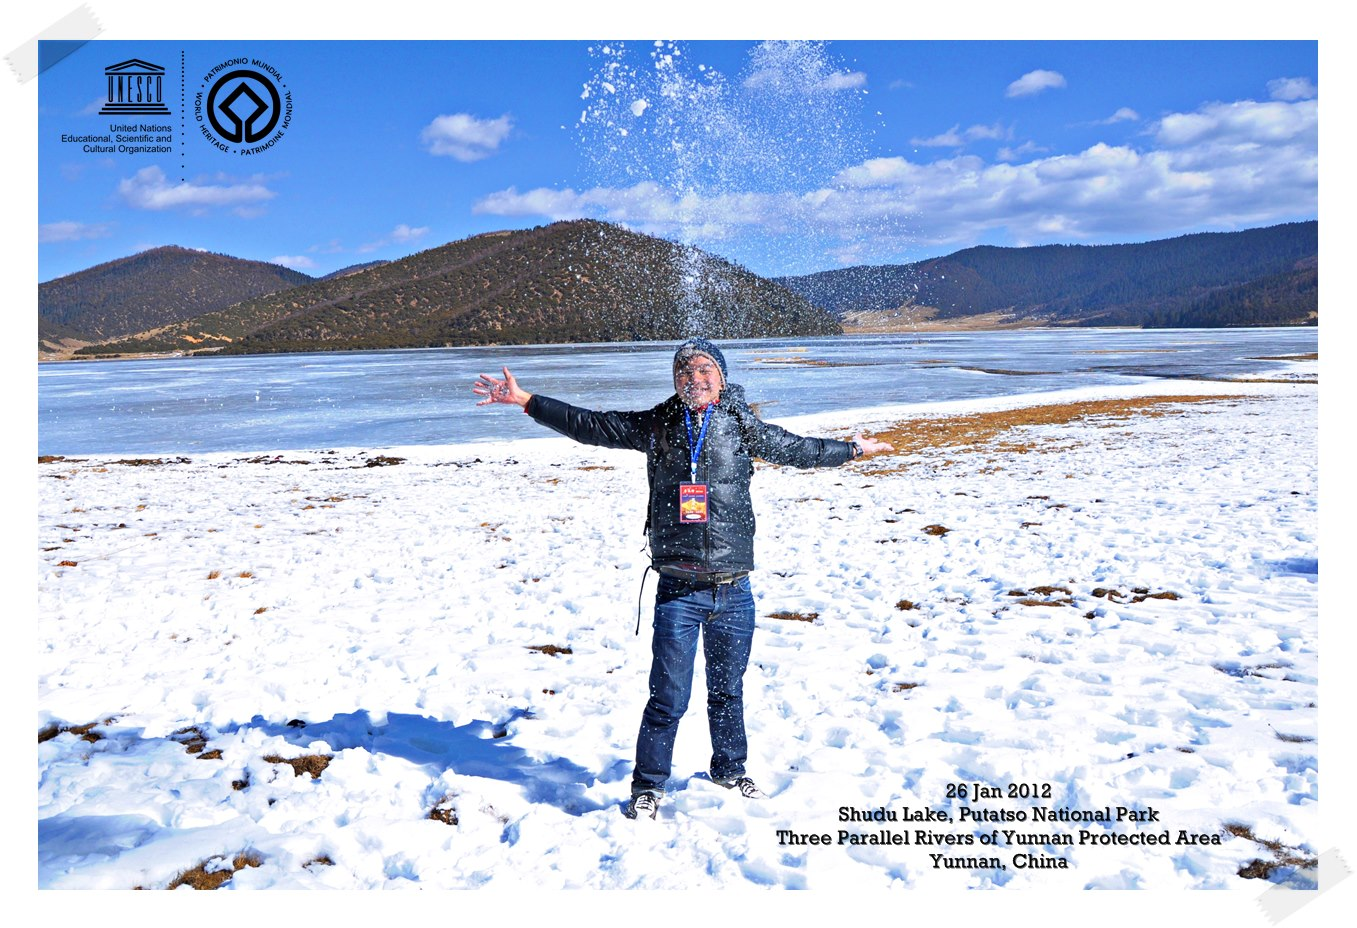 Freezing Shudu Lake Three Parallel Rivers of Yunnan Protected Areas - China Thomas shaw